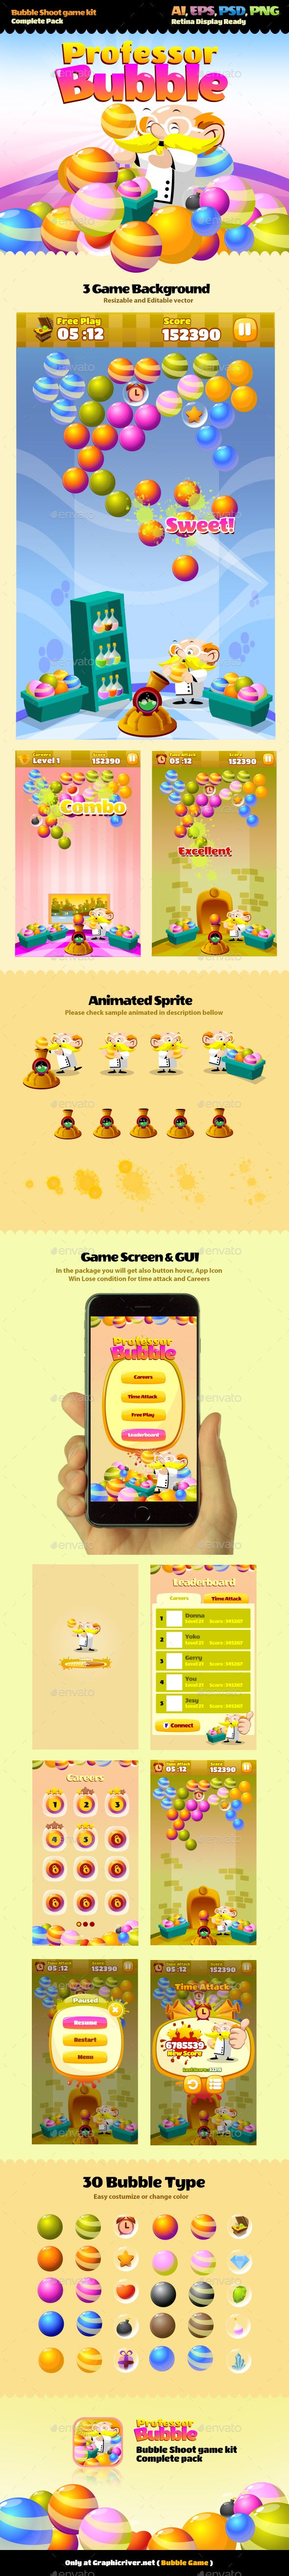 Bubble Game — Photoshop PSD #casual #easy game • Download ➝ https://graphicriver.net/item/bubble-game/10123614?ref=pxcr